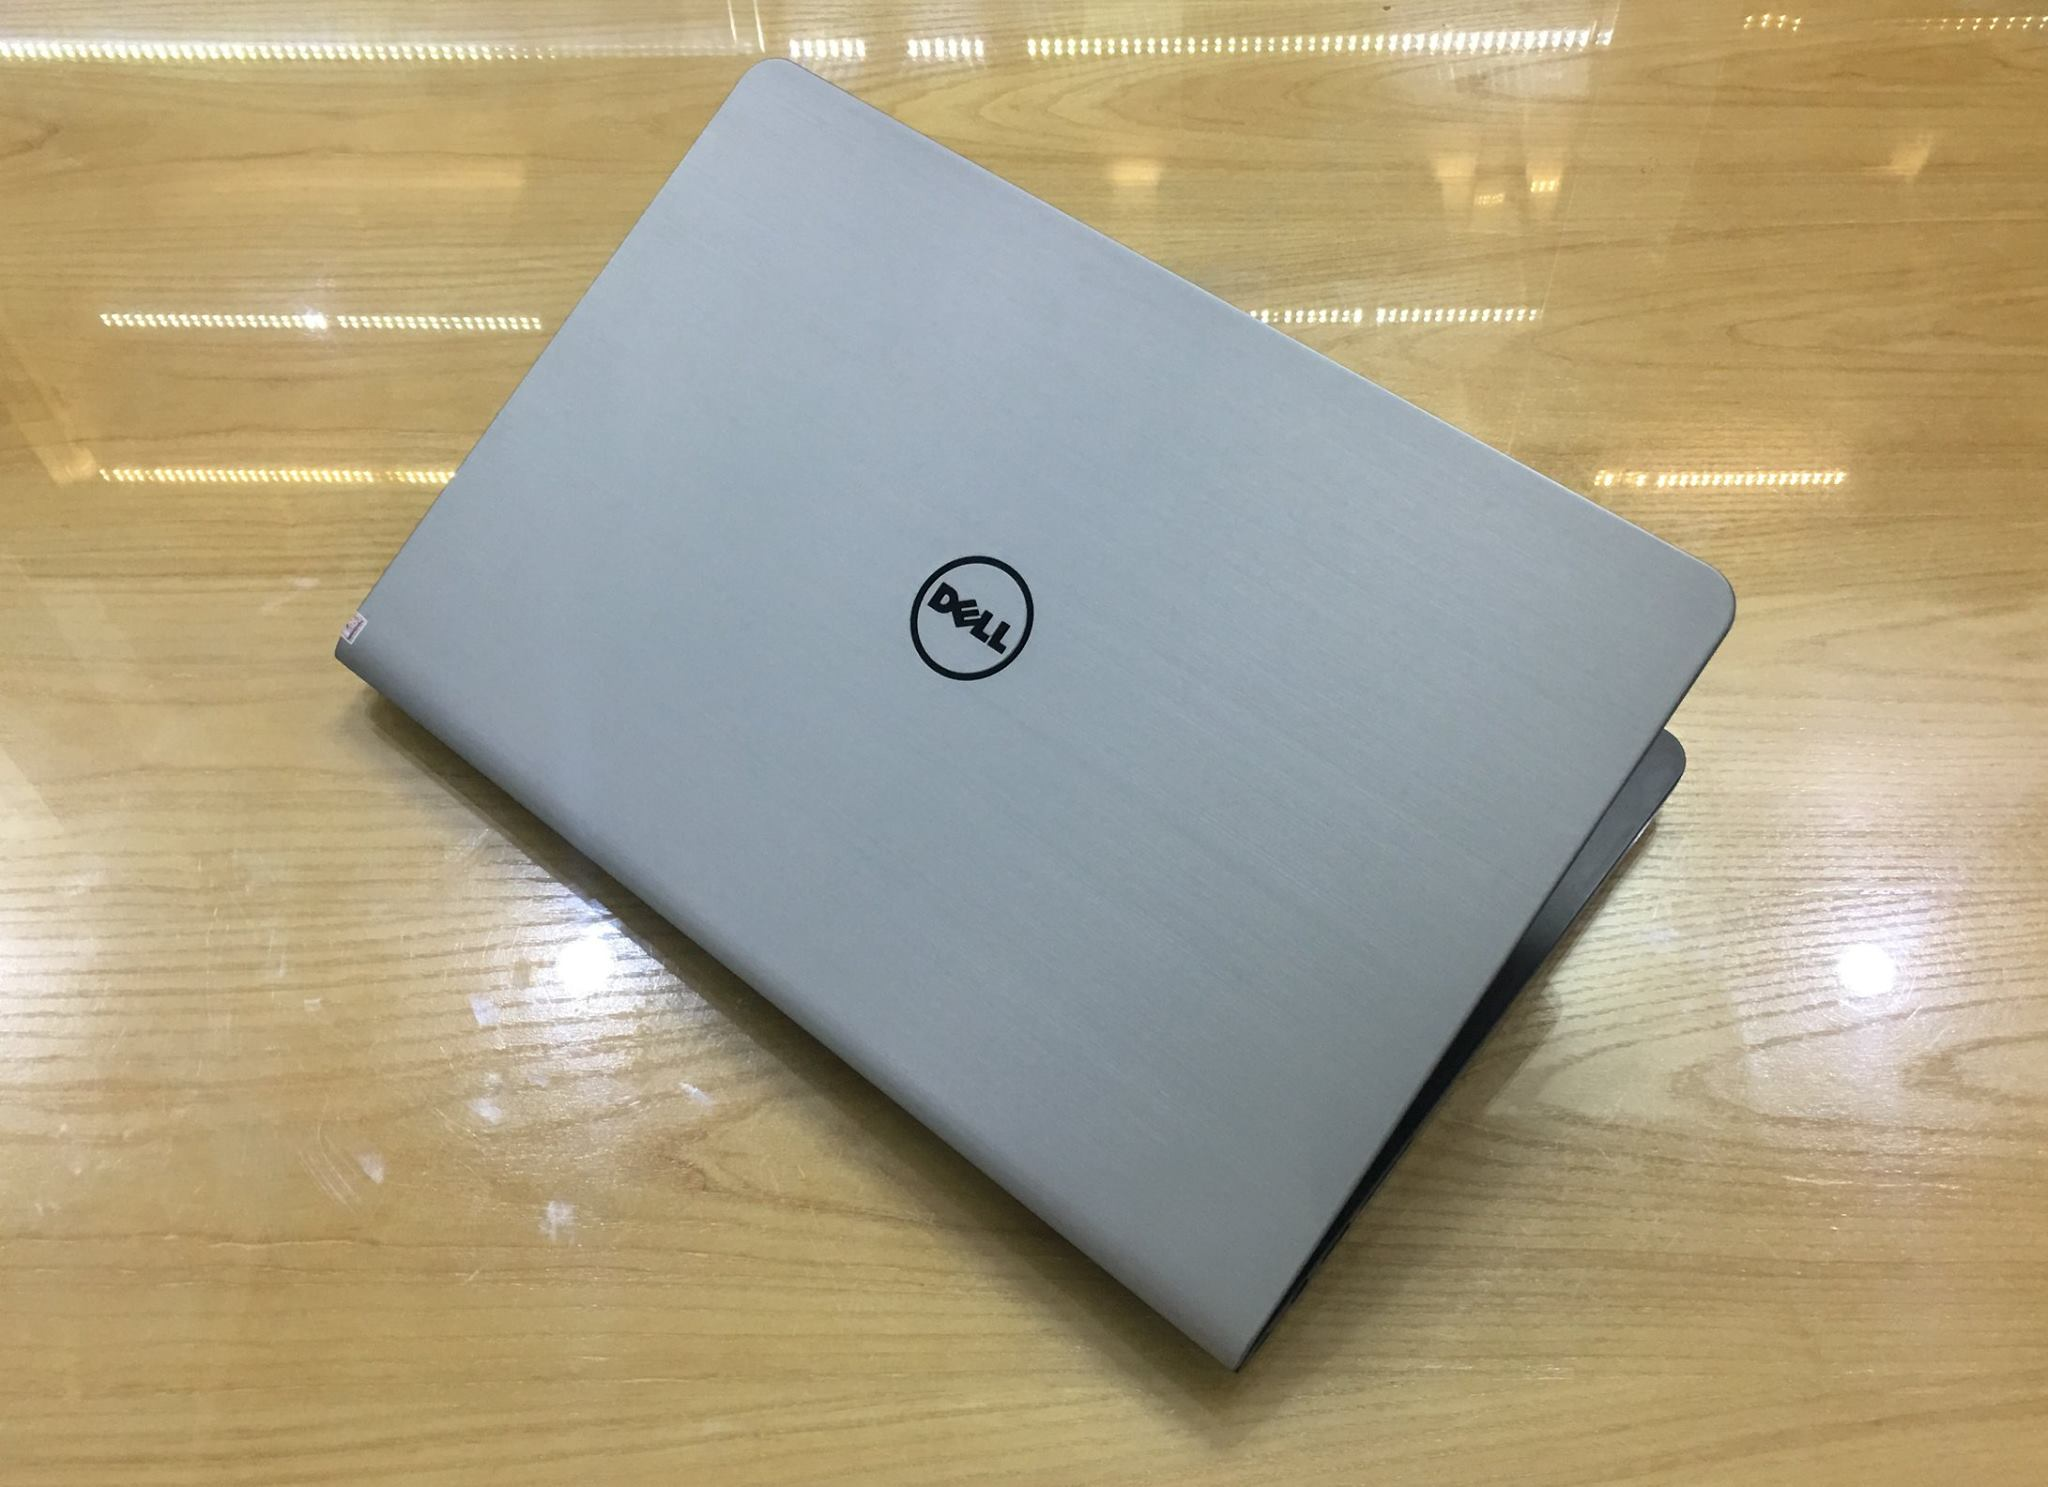 "Dell Inspiron 5547 | i5 4210U | RAM 4 GB |HDD 500GB | 15.6"" HD 